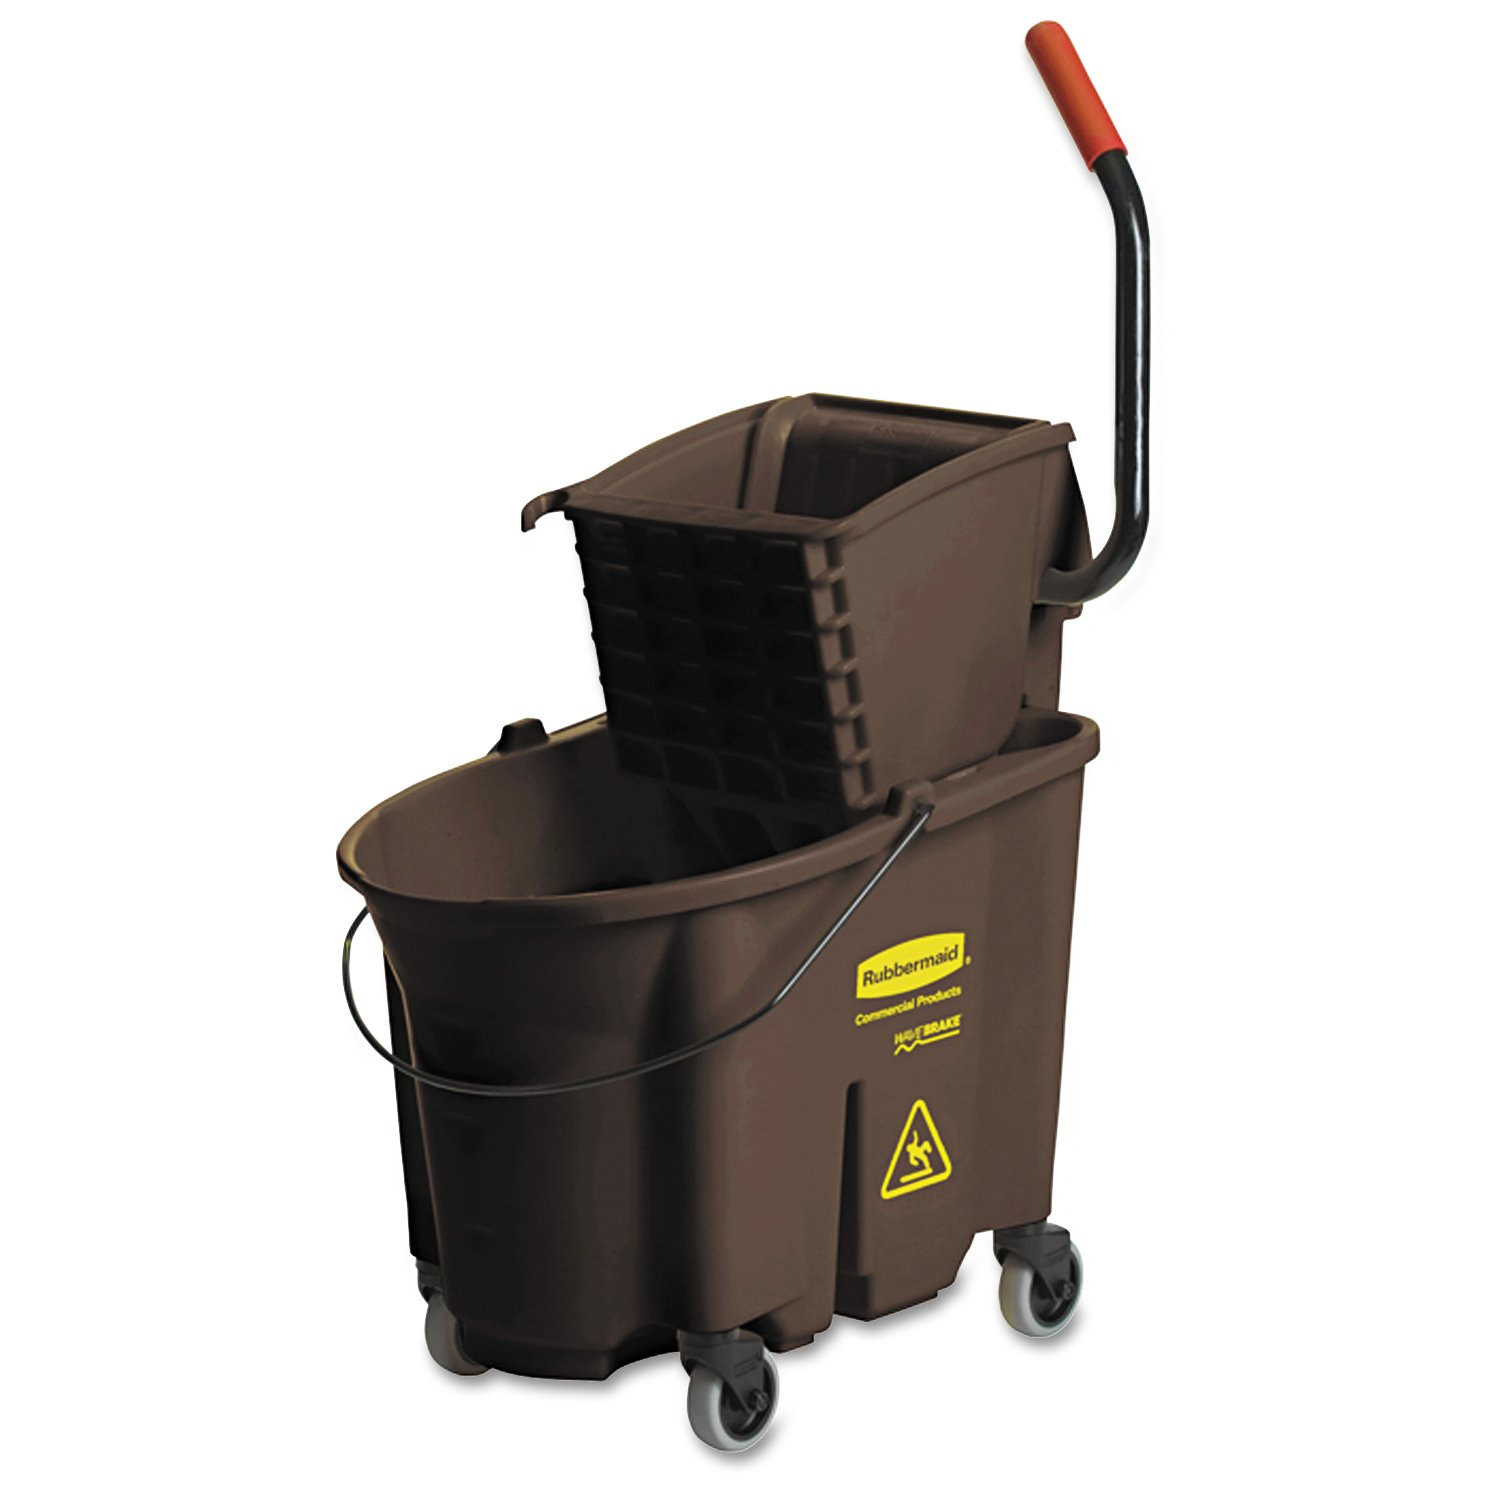 Rubbermaid Commercial FG758088BRN WaveBrake Side Press Combo High-Performance Mopping System, 35-Quart Capacity, Brown